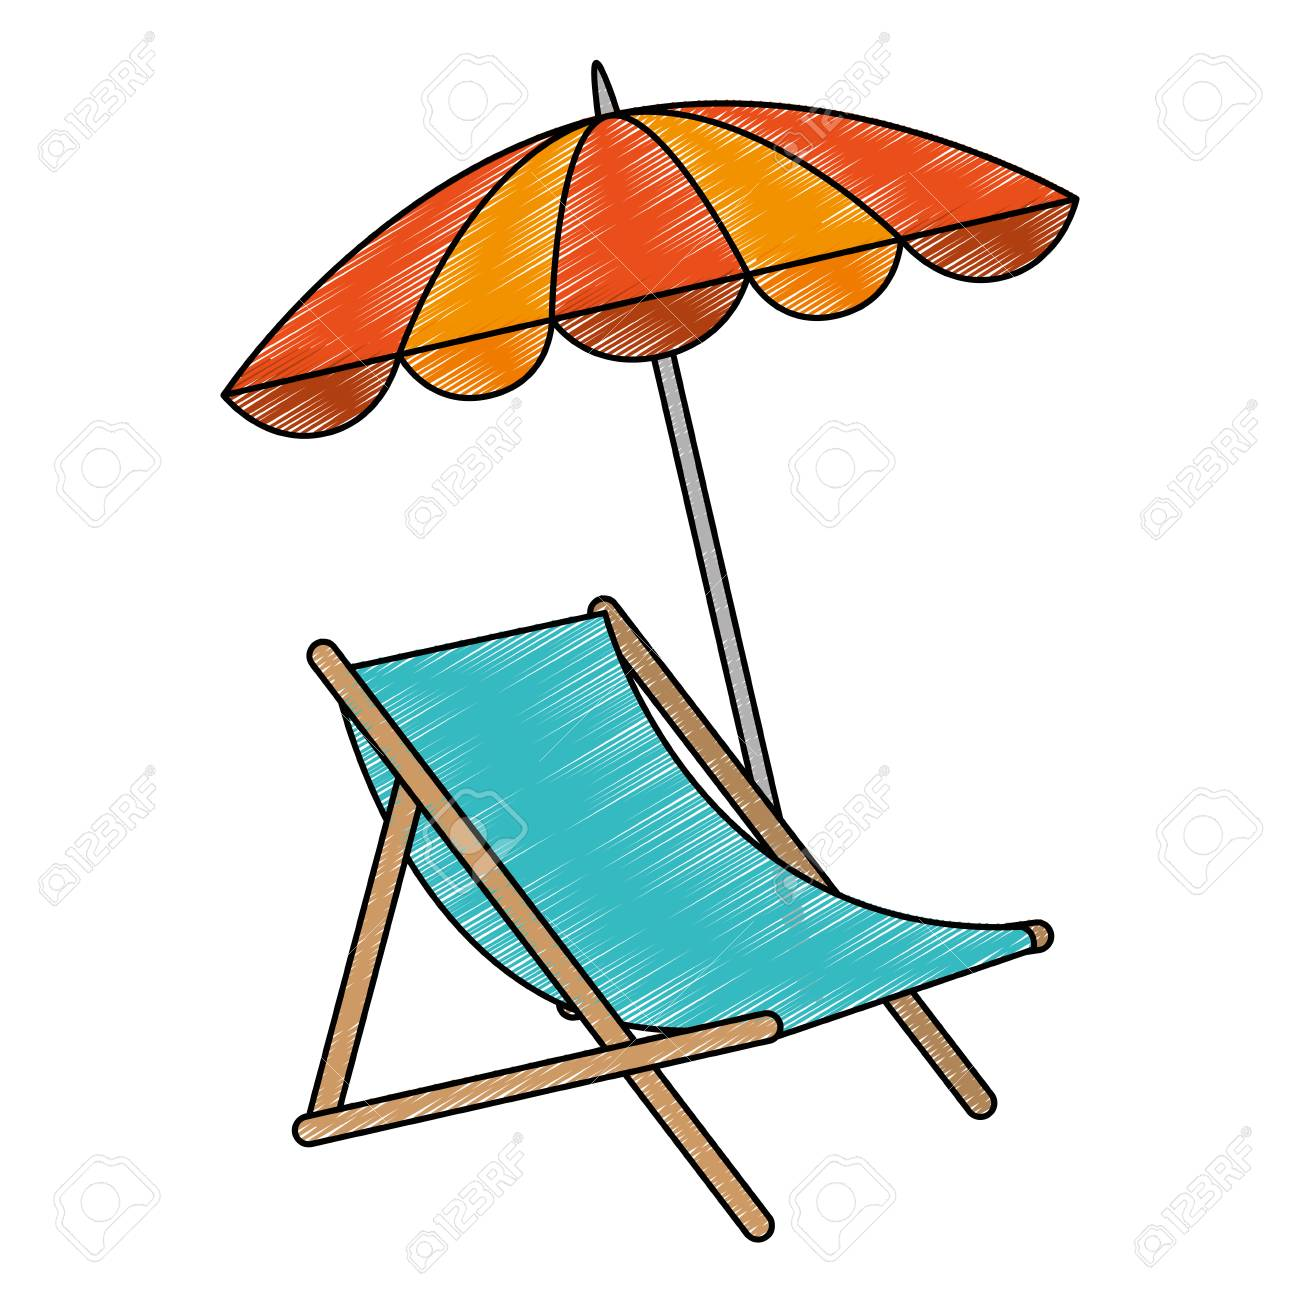 beach chair and umbrella clipart leap by steelcase with vector illustration design royalty free stock 93724965